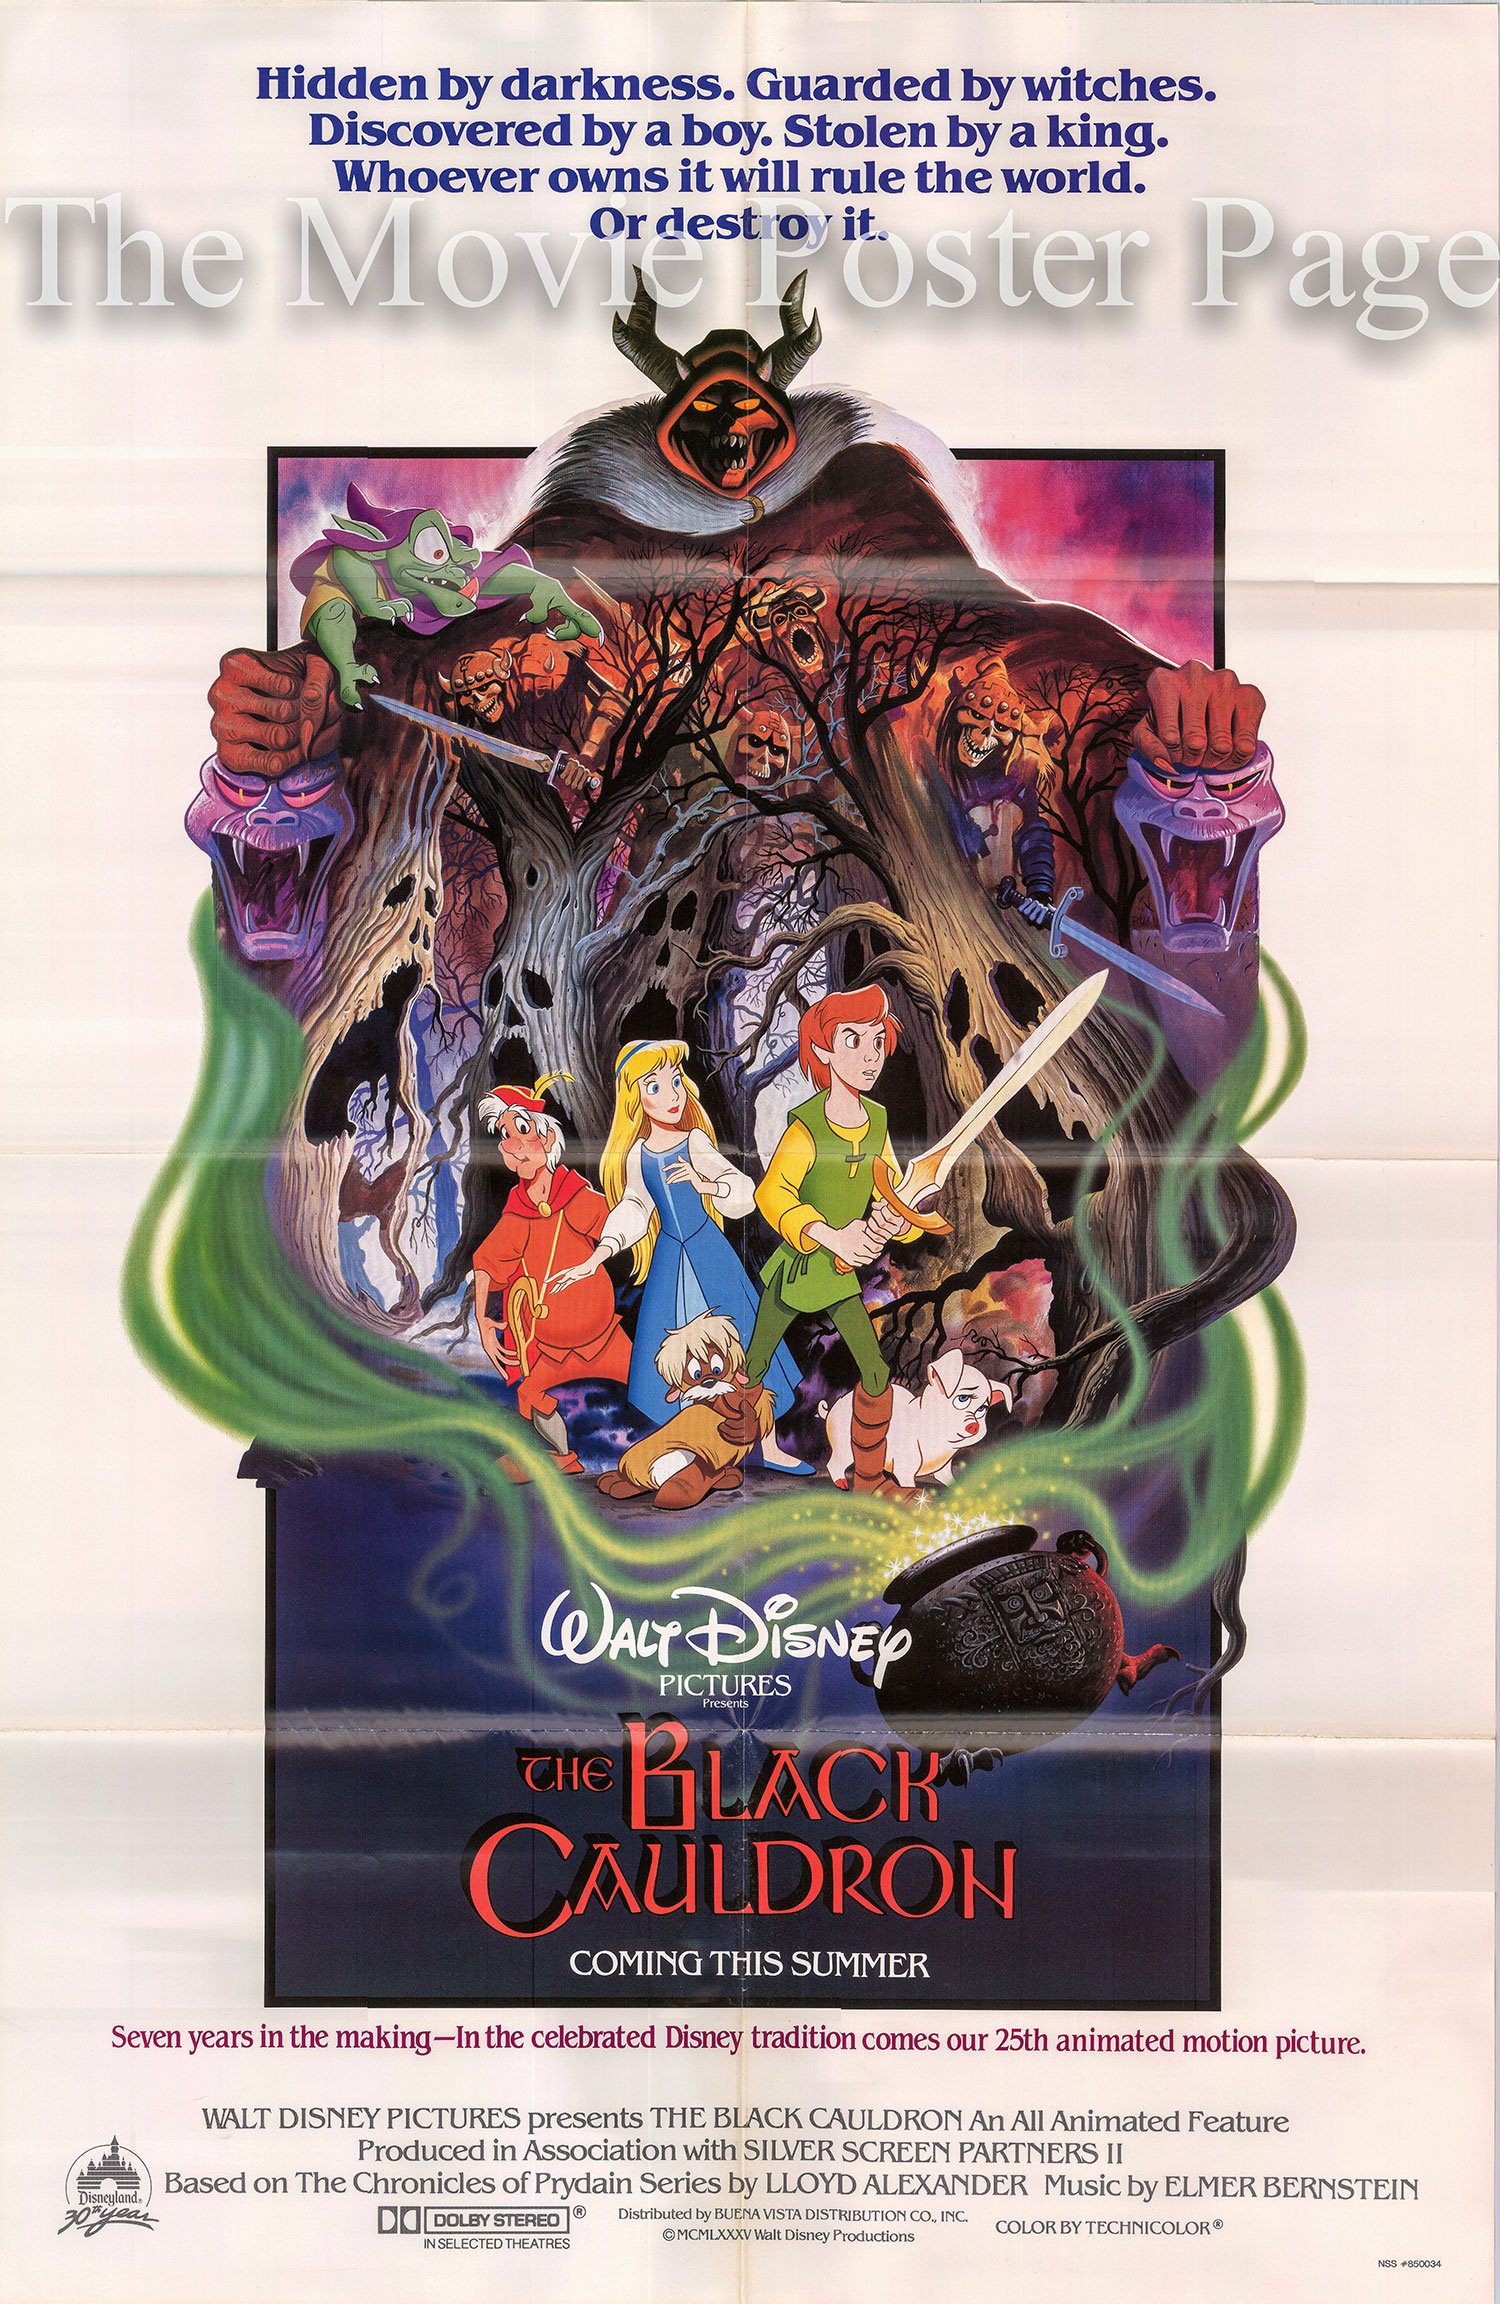 Pictured is a US advance one-sheet poster for the 1985 Ted Berman and Richard Rich film The Black Cauldron, starring Grant Bardsley as the voice of Taran.